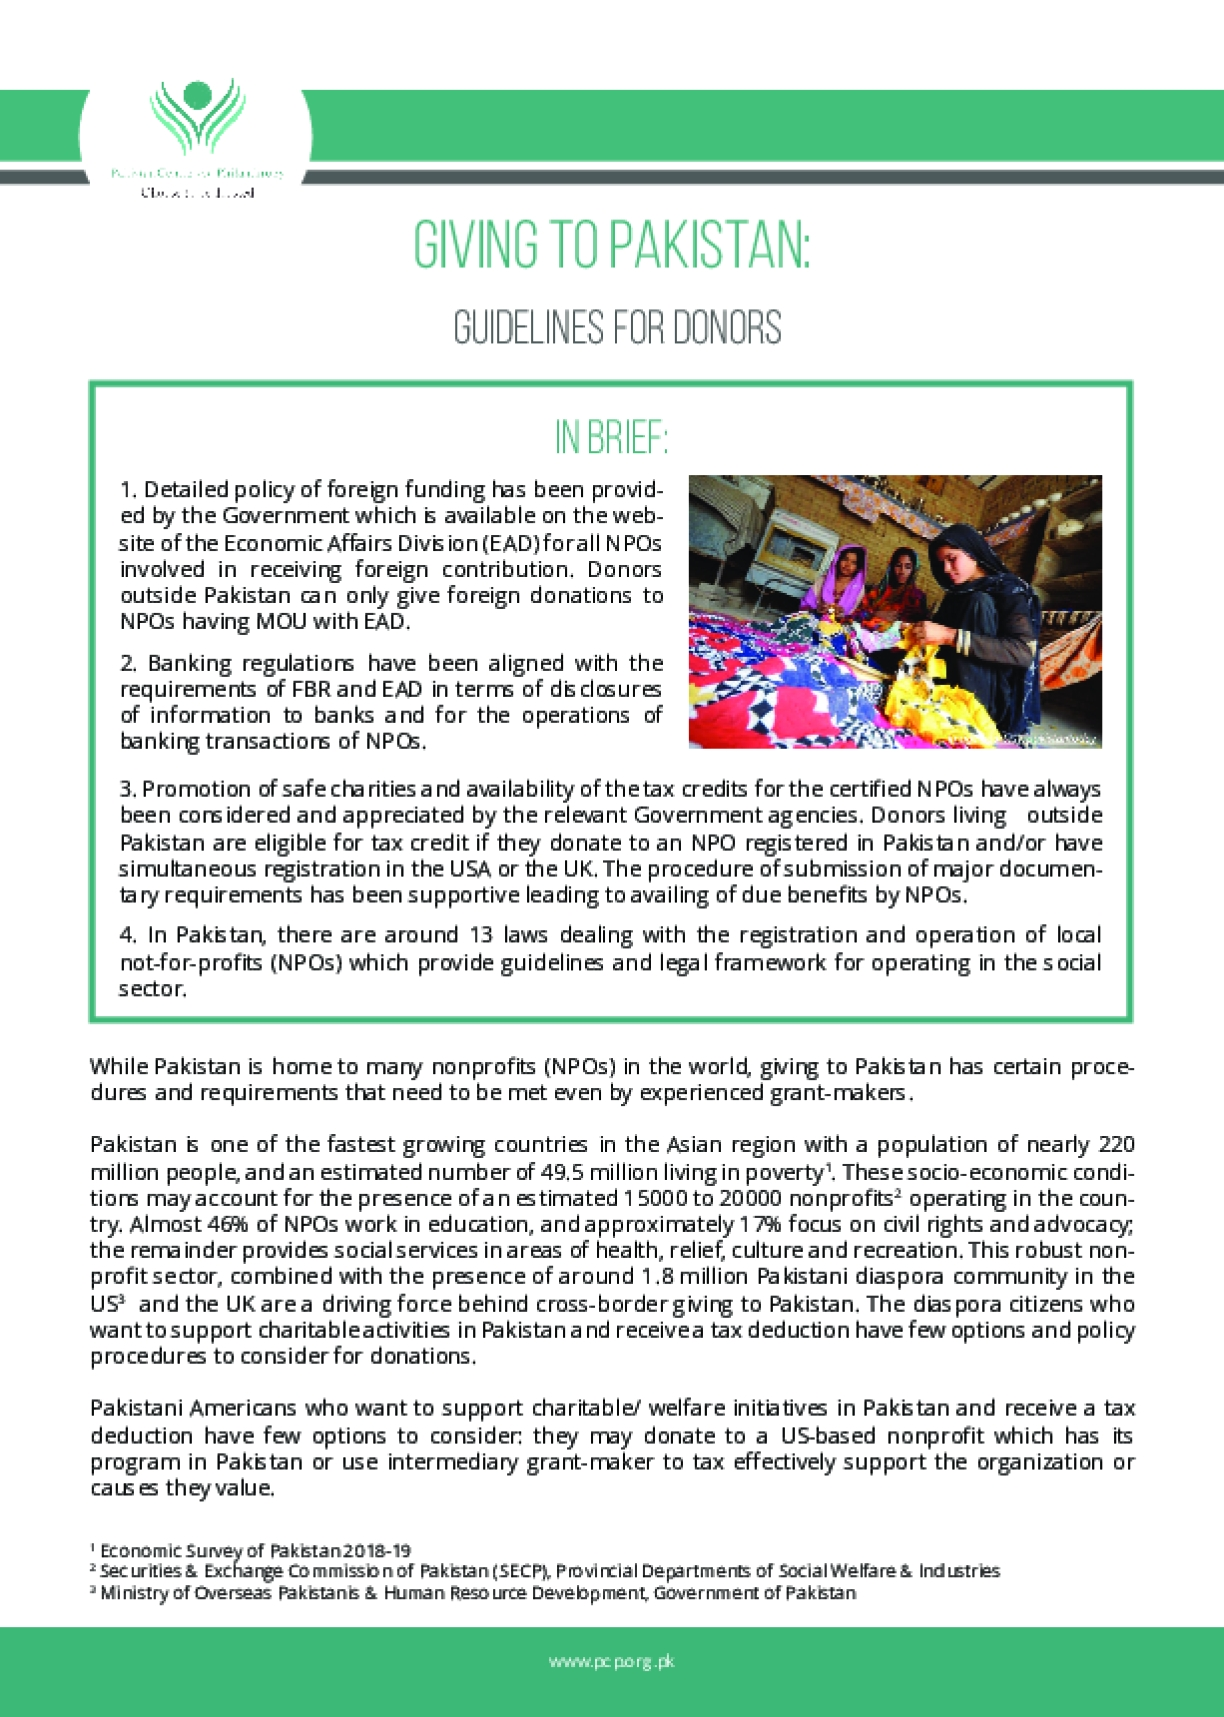 Giving to Pakistan: Guidelines for Donors